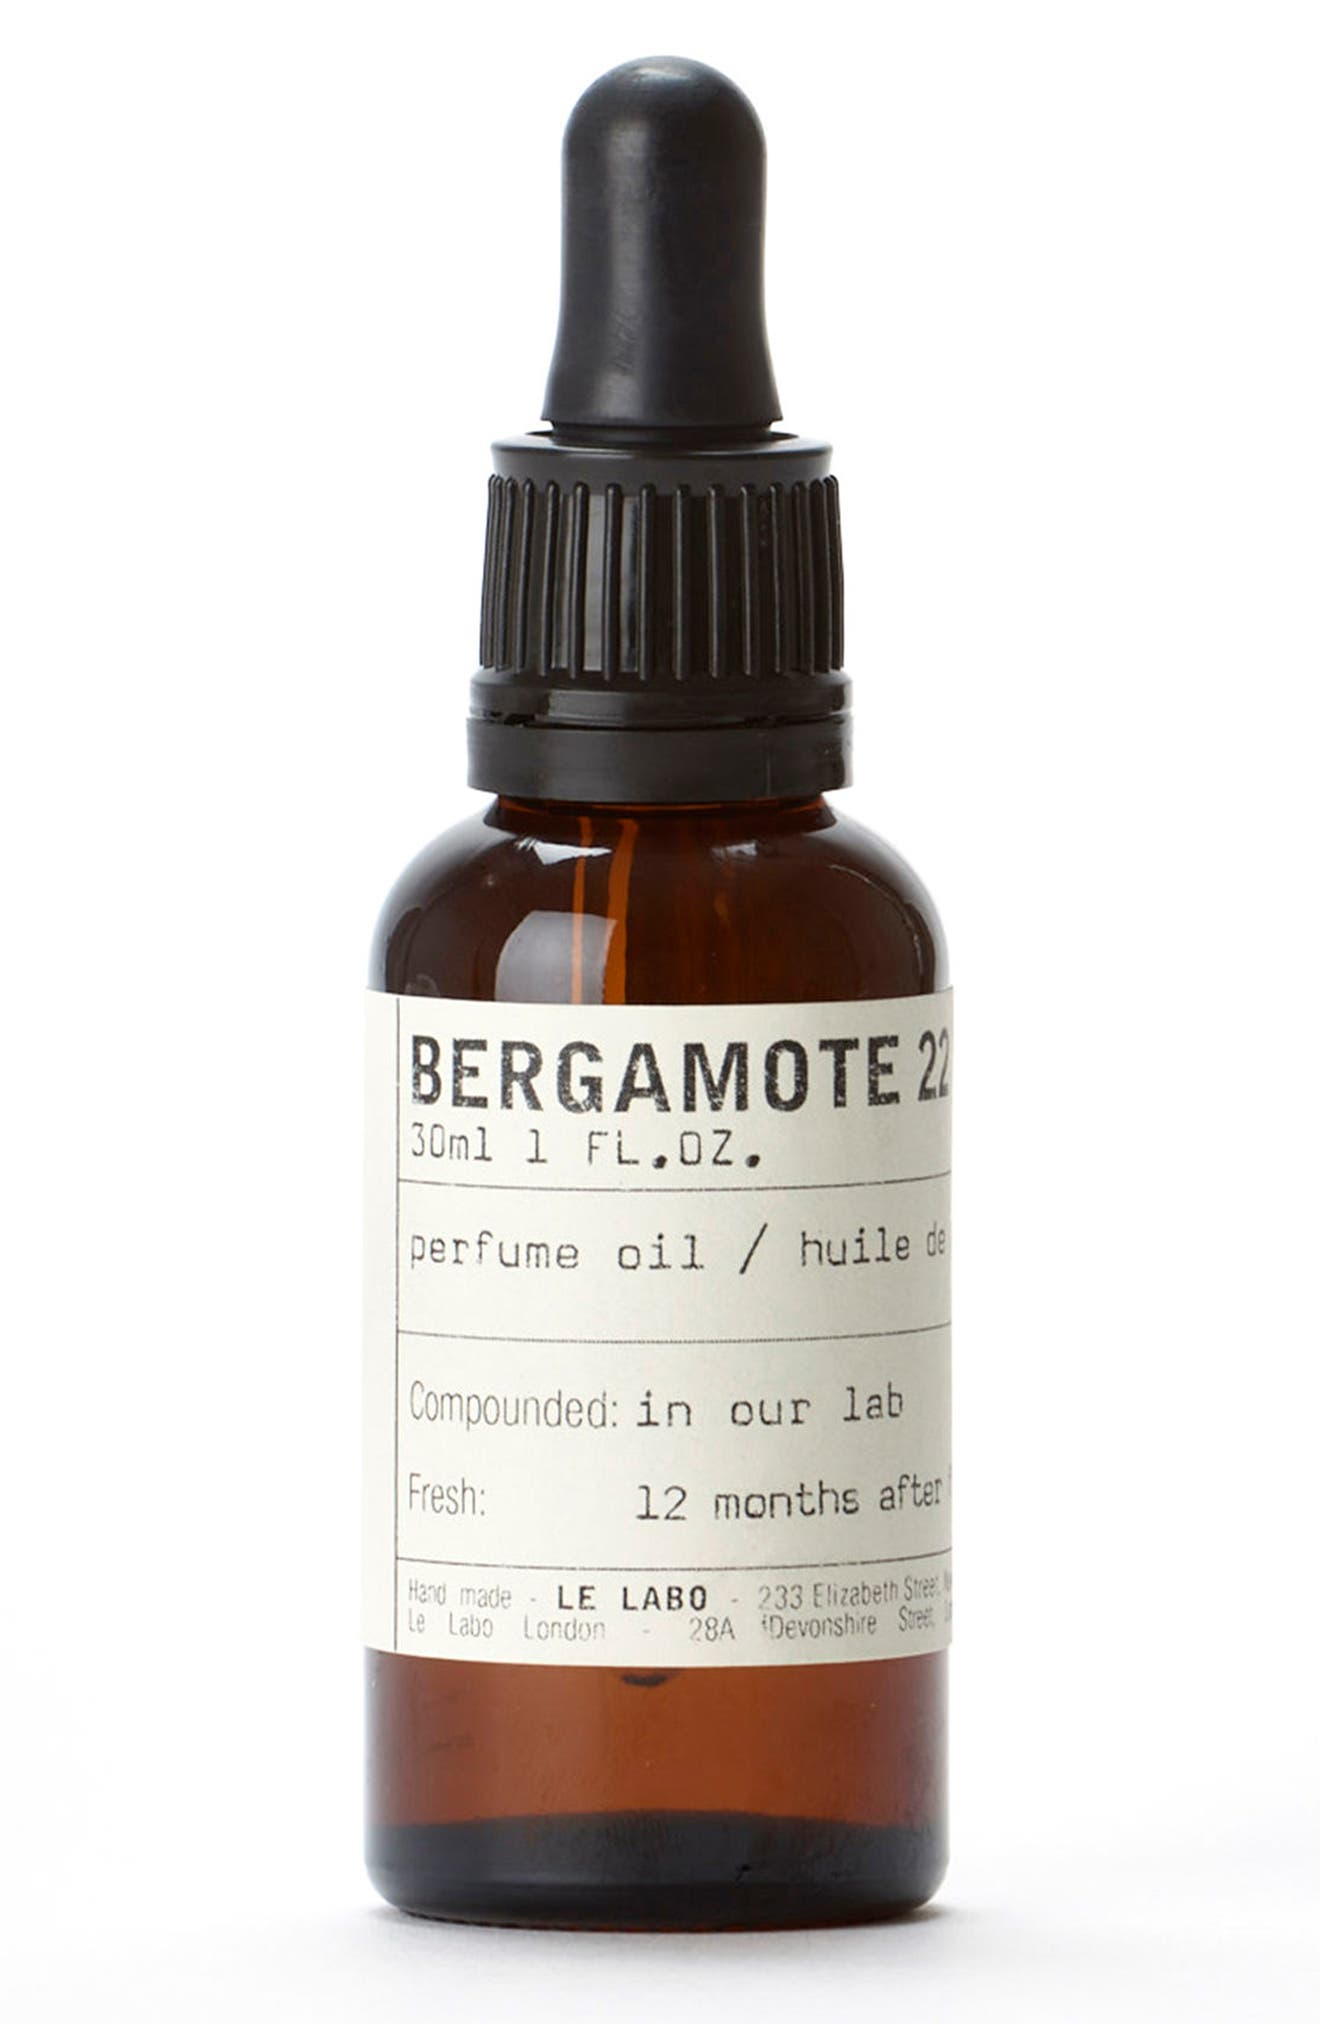 Alternate Image 1 Selected - Le Labo 'Bergamote 22' Perfume Oil